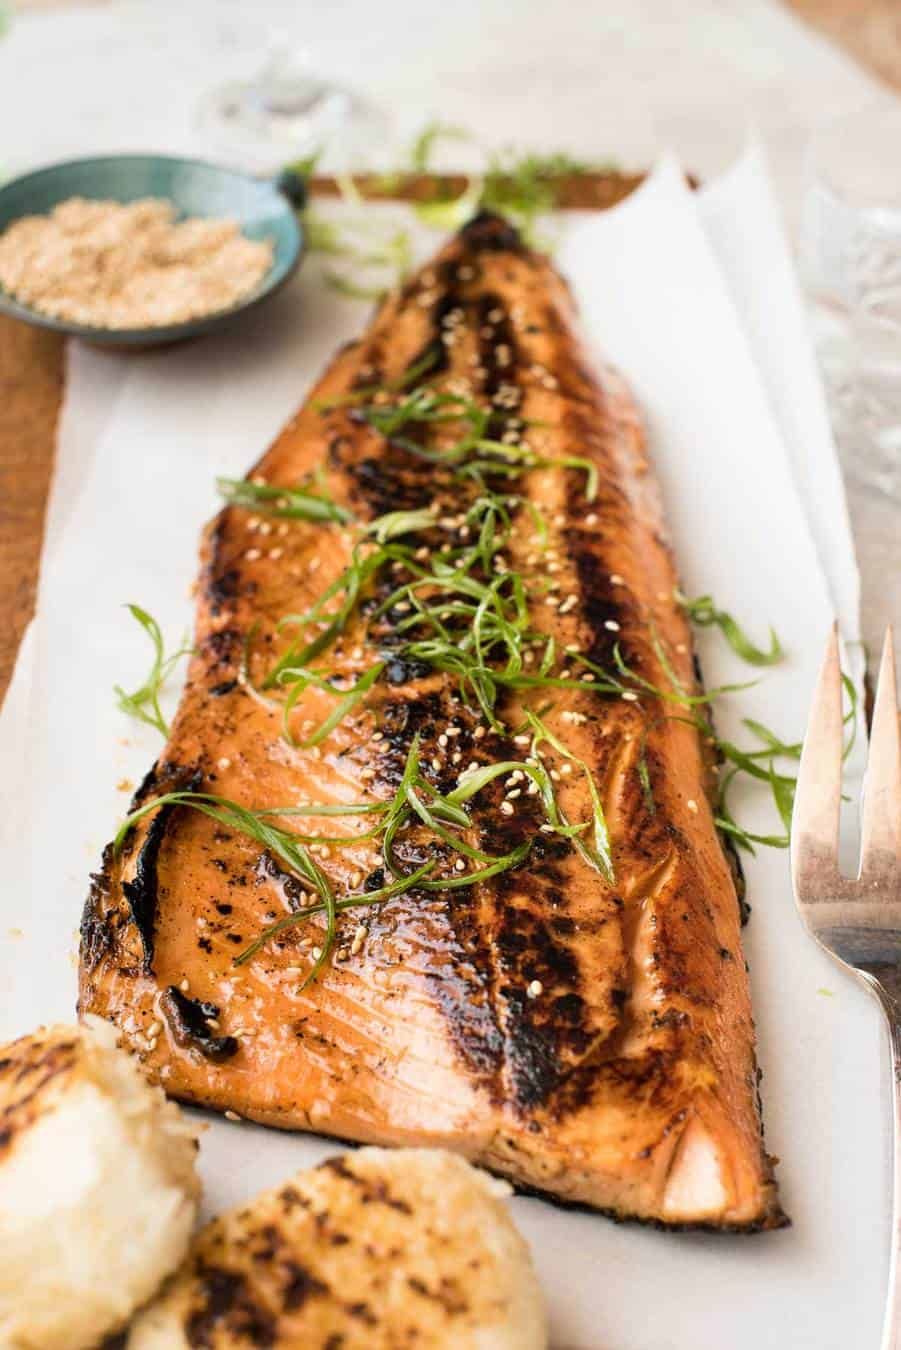 Japanese Miso Salmon Barbecue Or Bake Recipetin Eats